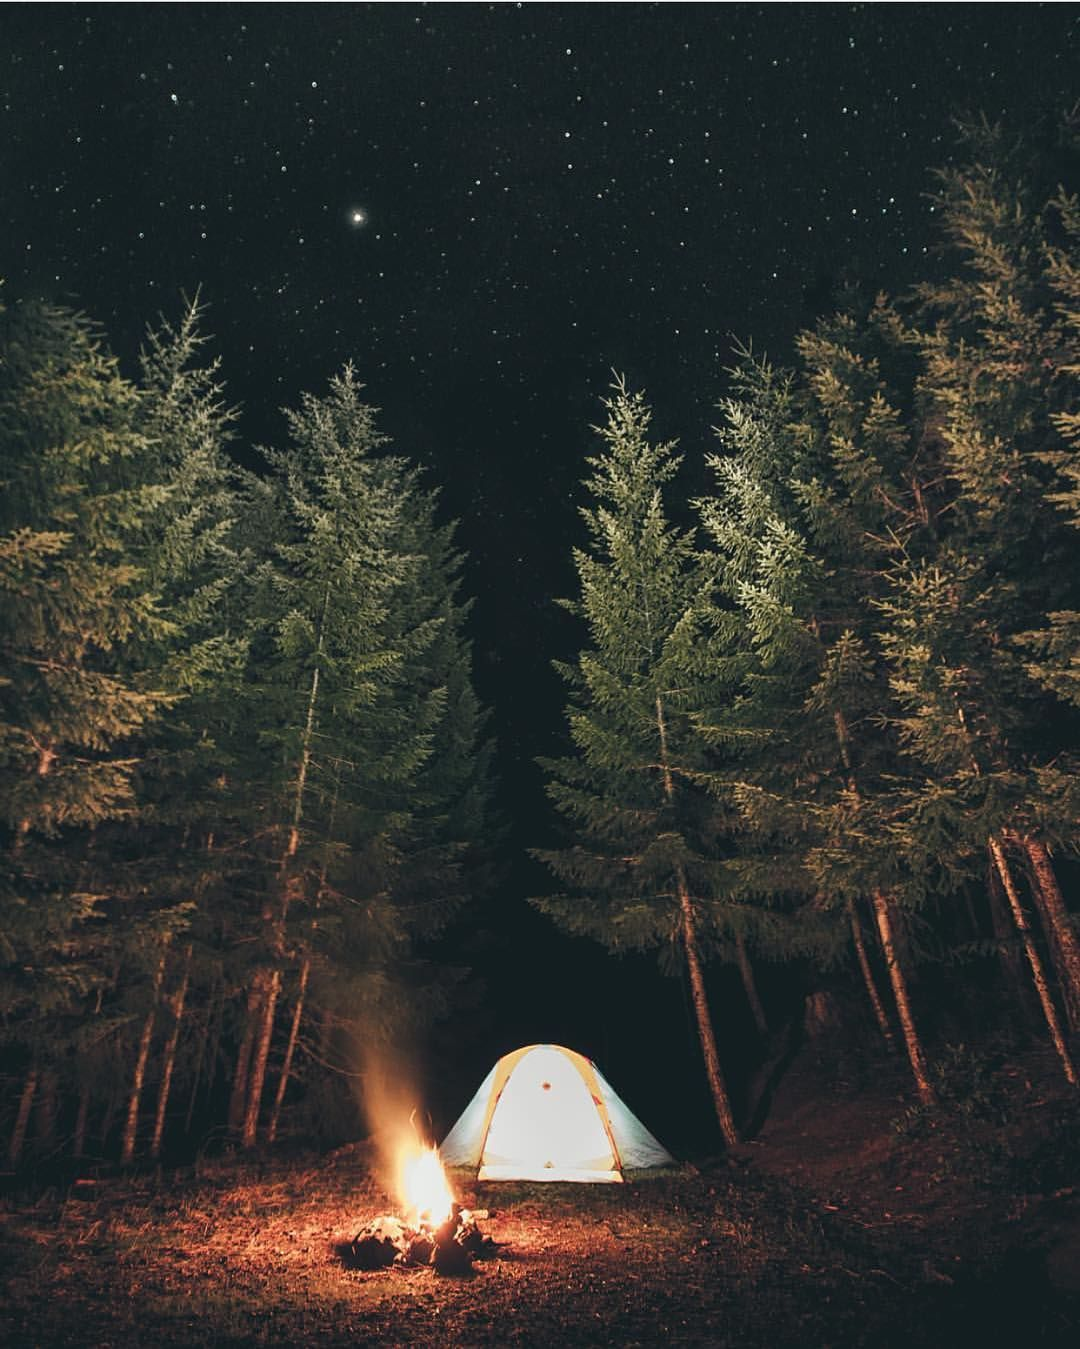 camping in the woods at night.  Woods The Magic Of Camping Captured By Fursty Musephoto To Camping In Woods At Night